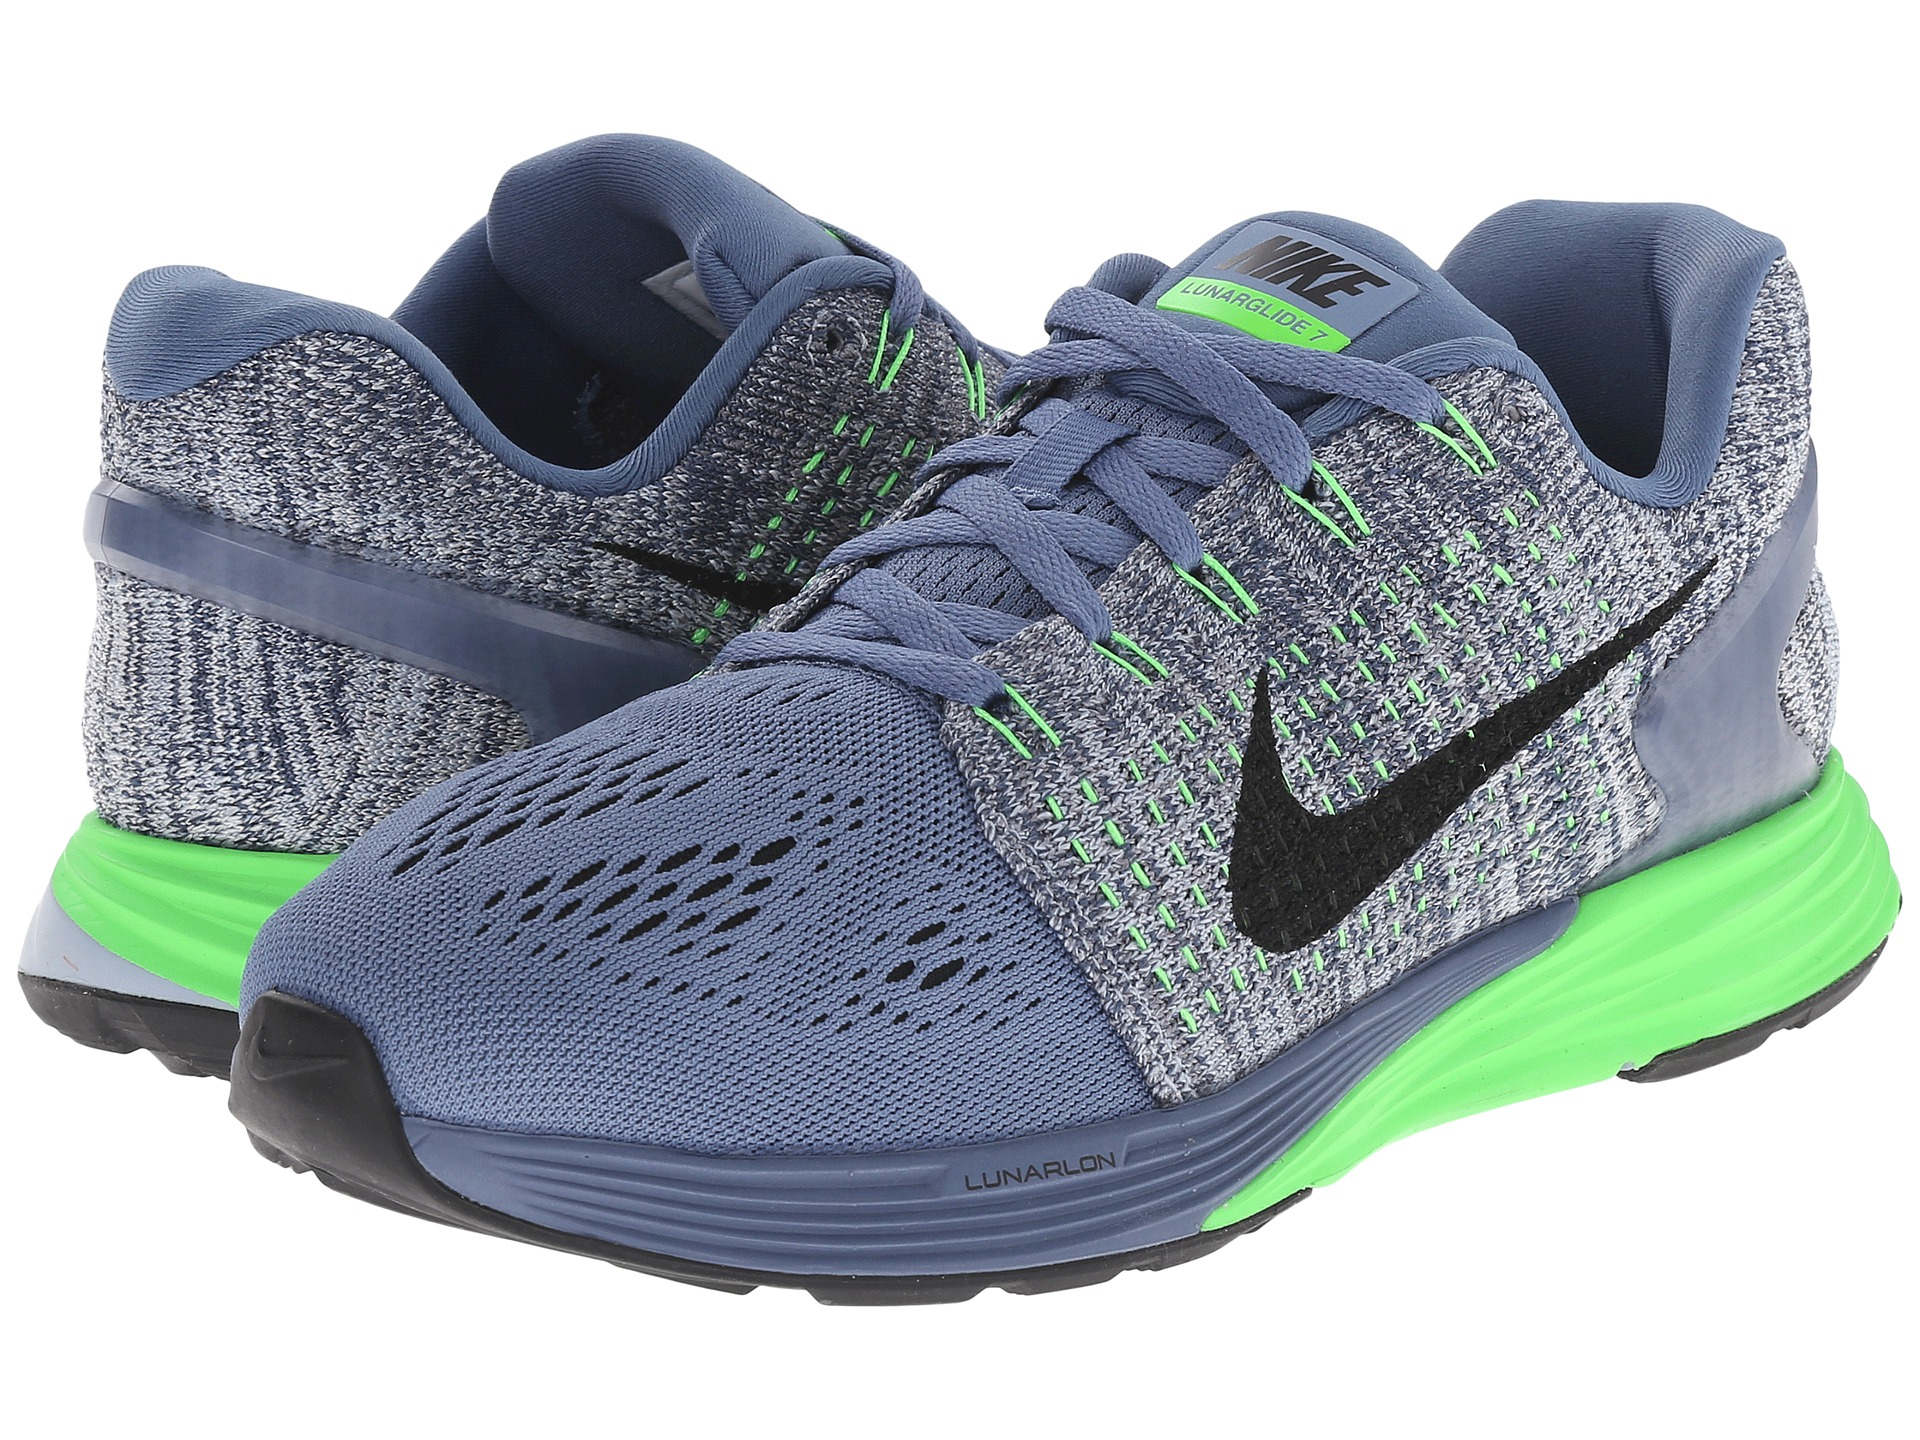 cheap for discount 2eb8e fe6be Nike Lunarglide 7 in Blue - Lyst